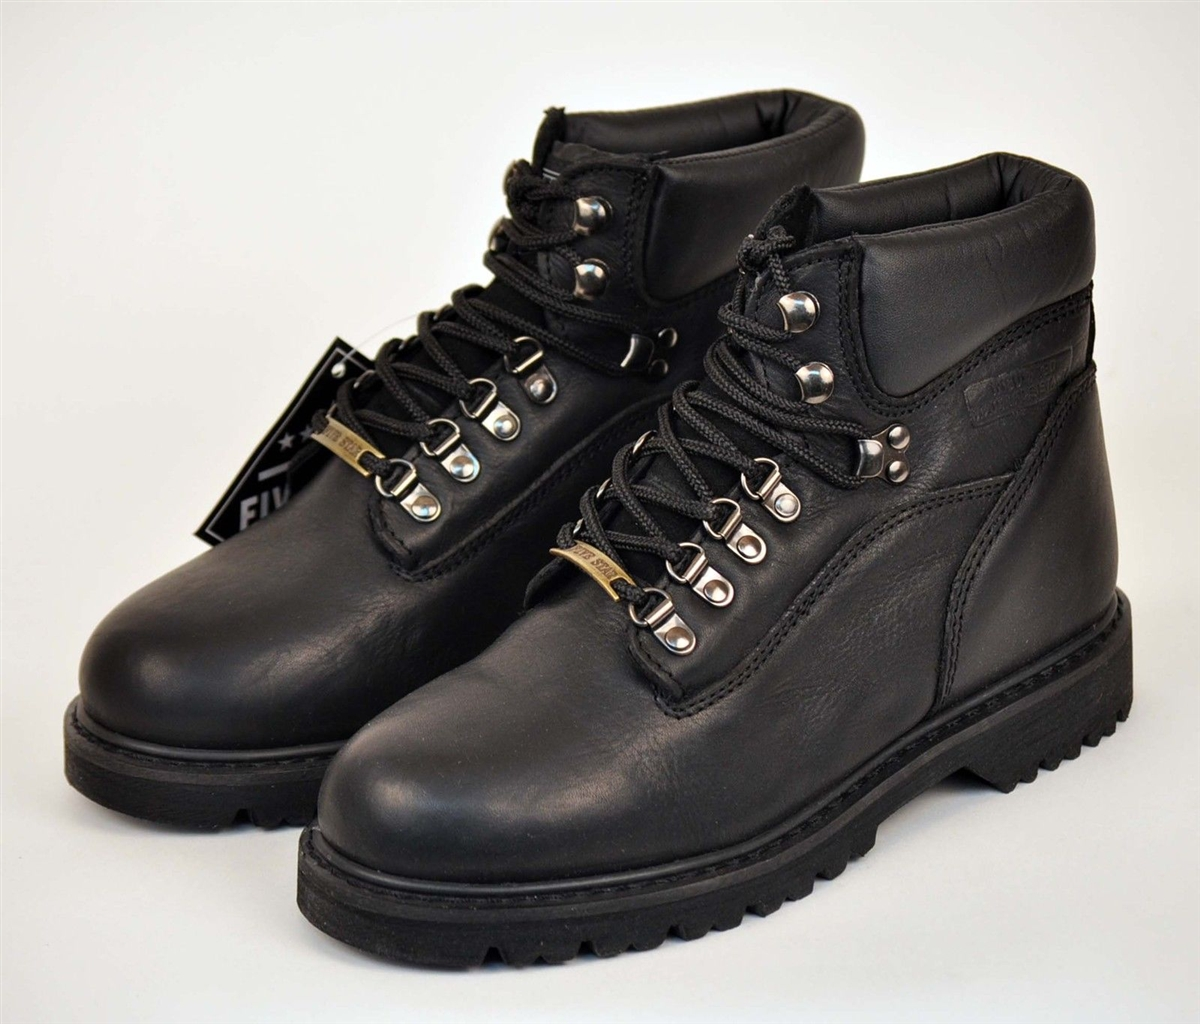 Five Star 6 Quot Black Leather Heavy Duty Work Boots